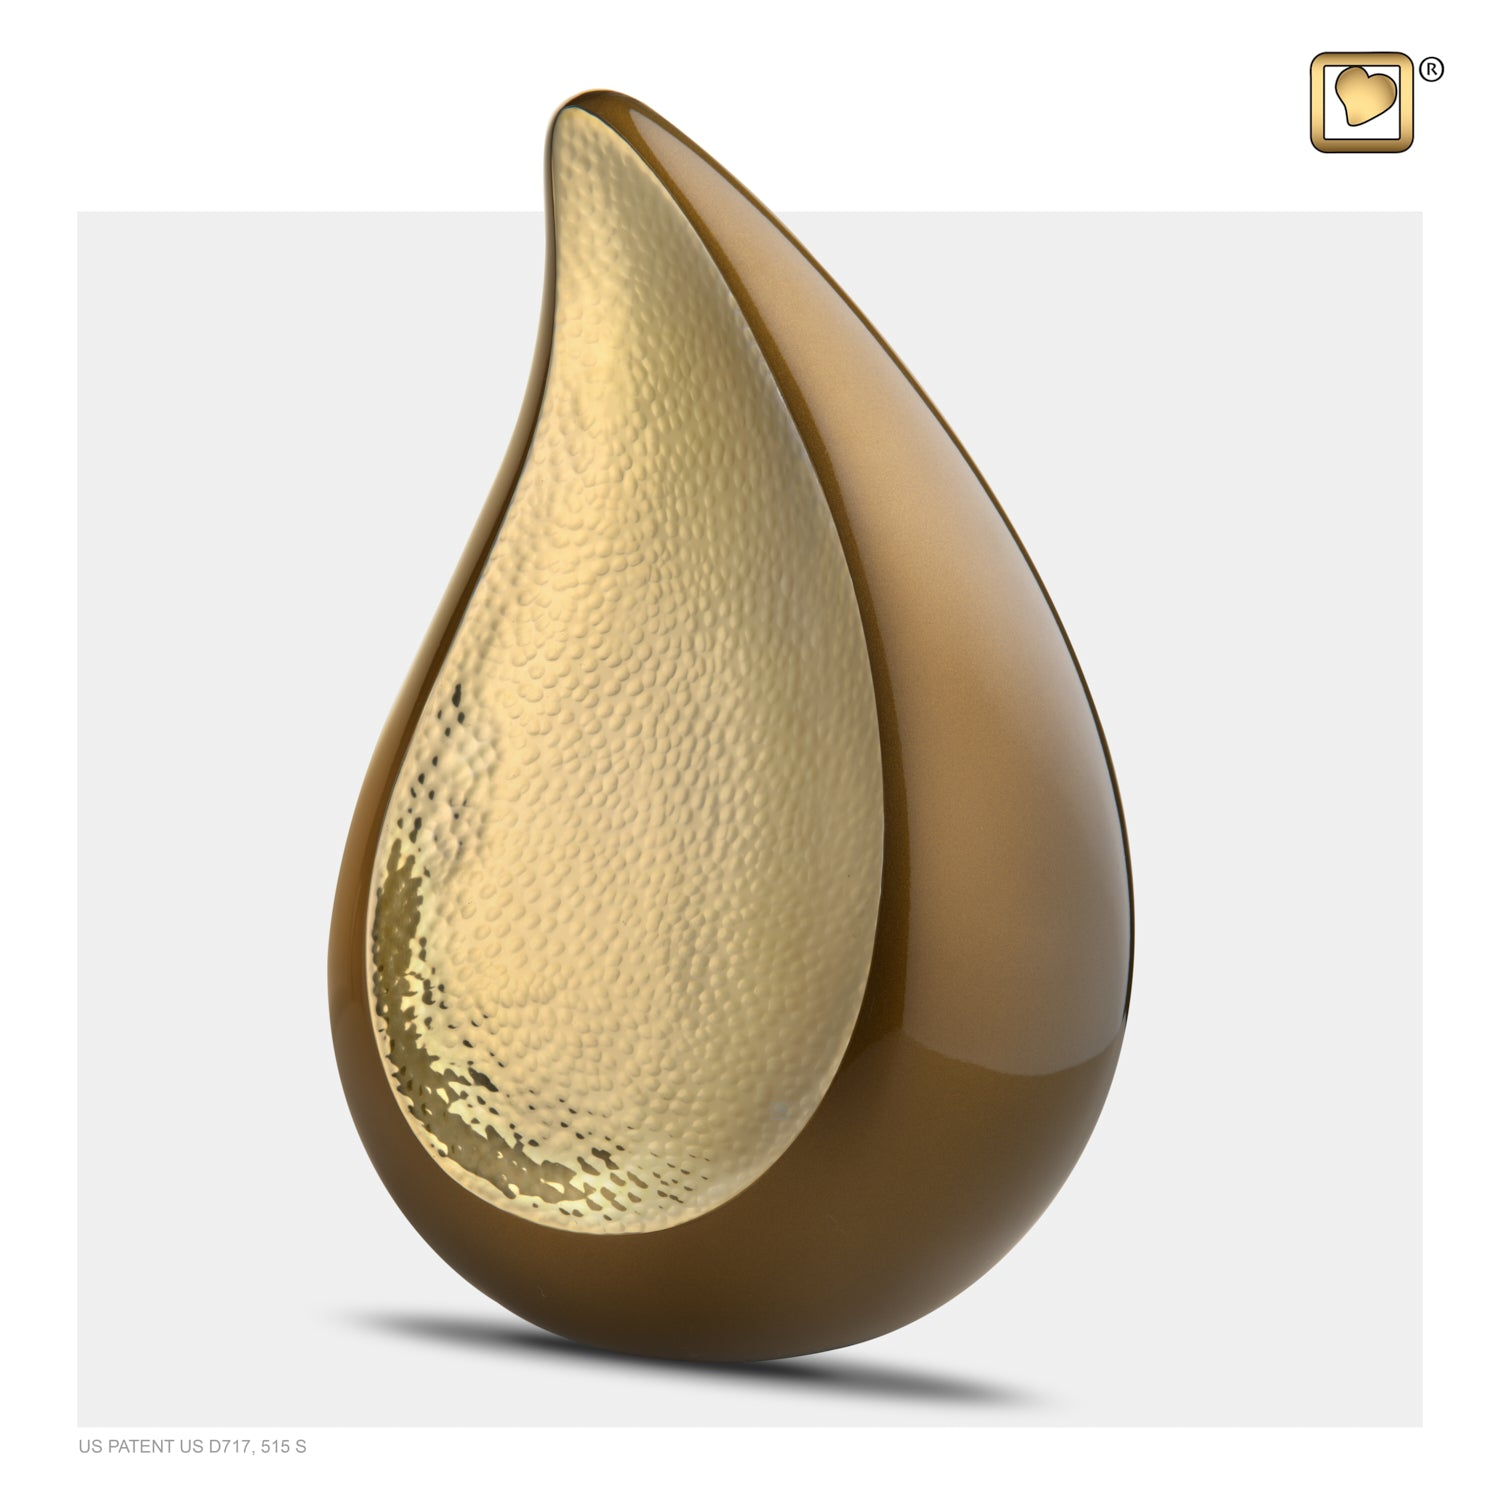 Adult TearDrop Hammered Gold Bronze Cremation Urn